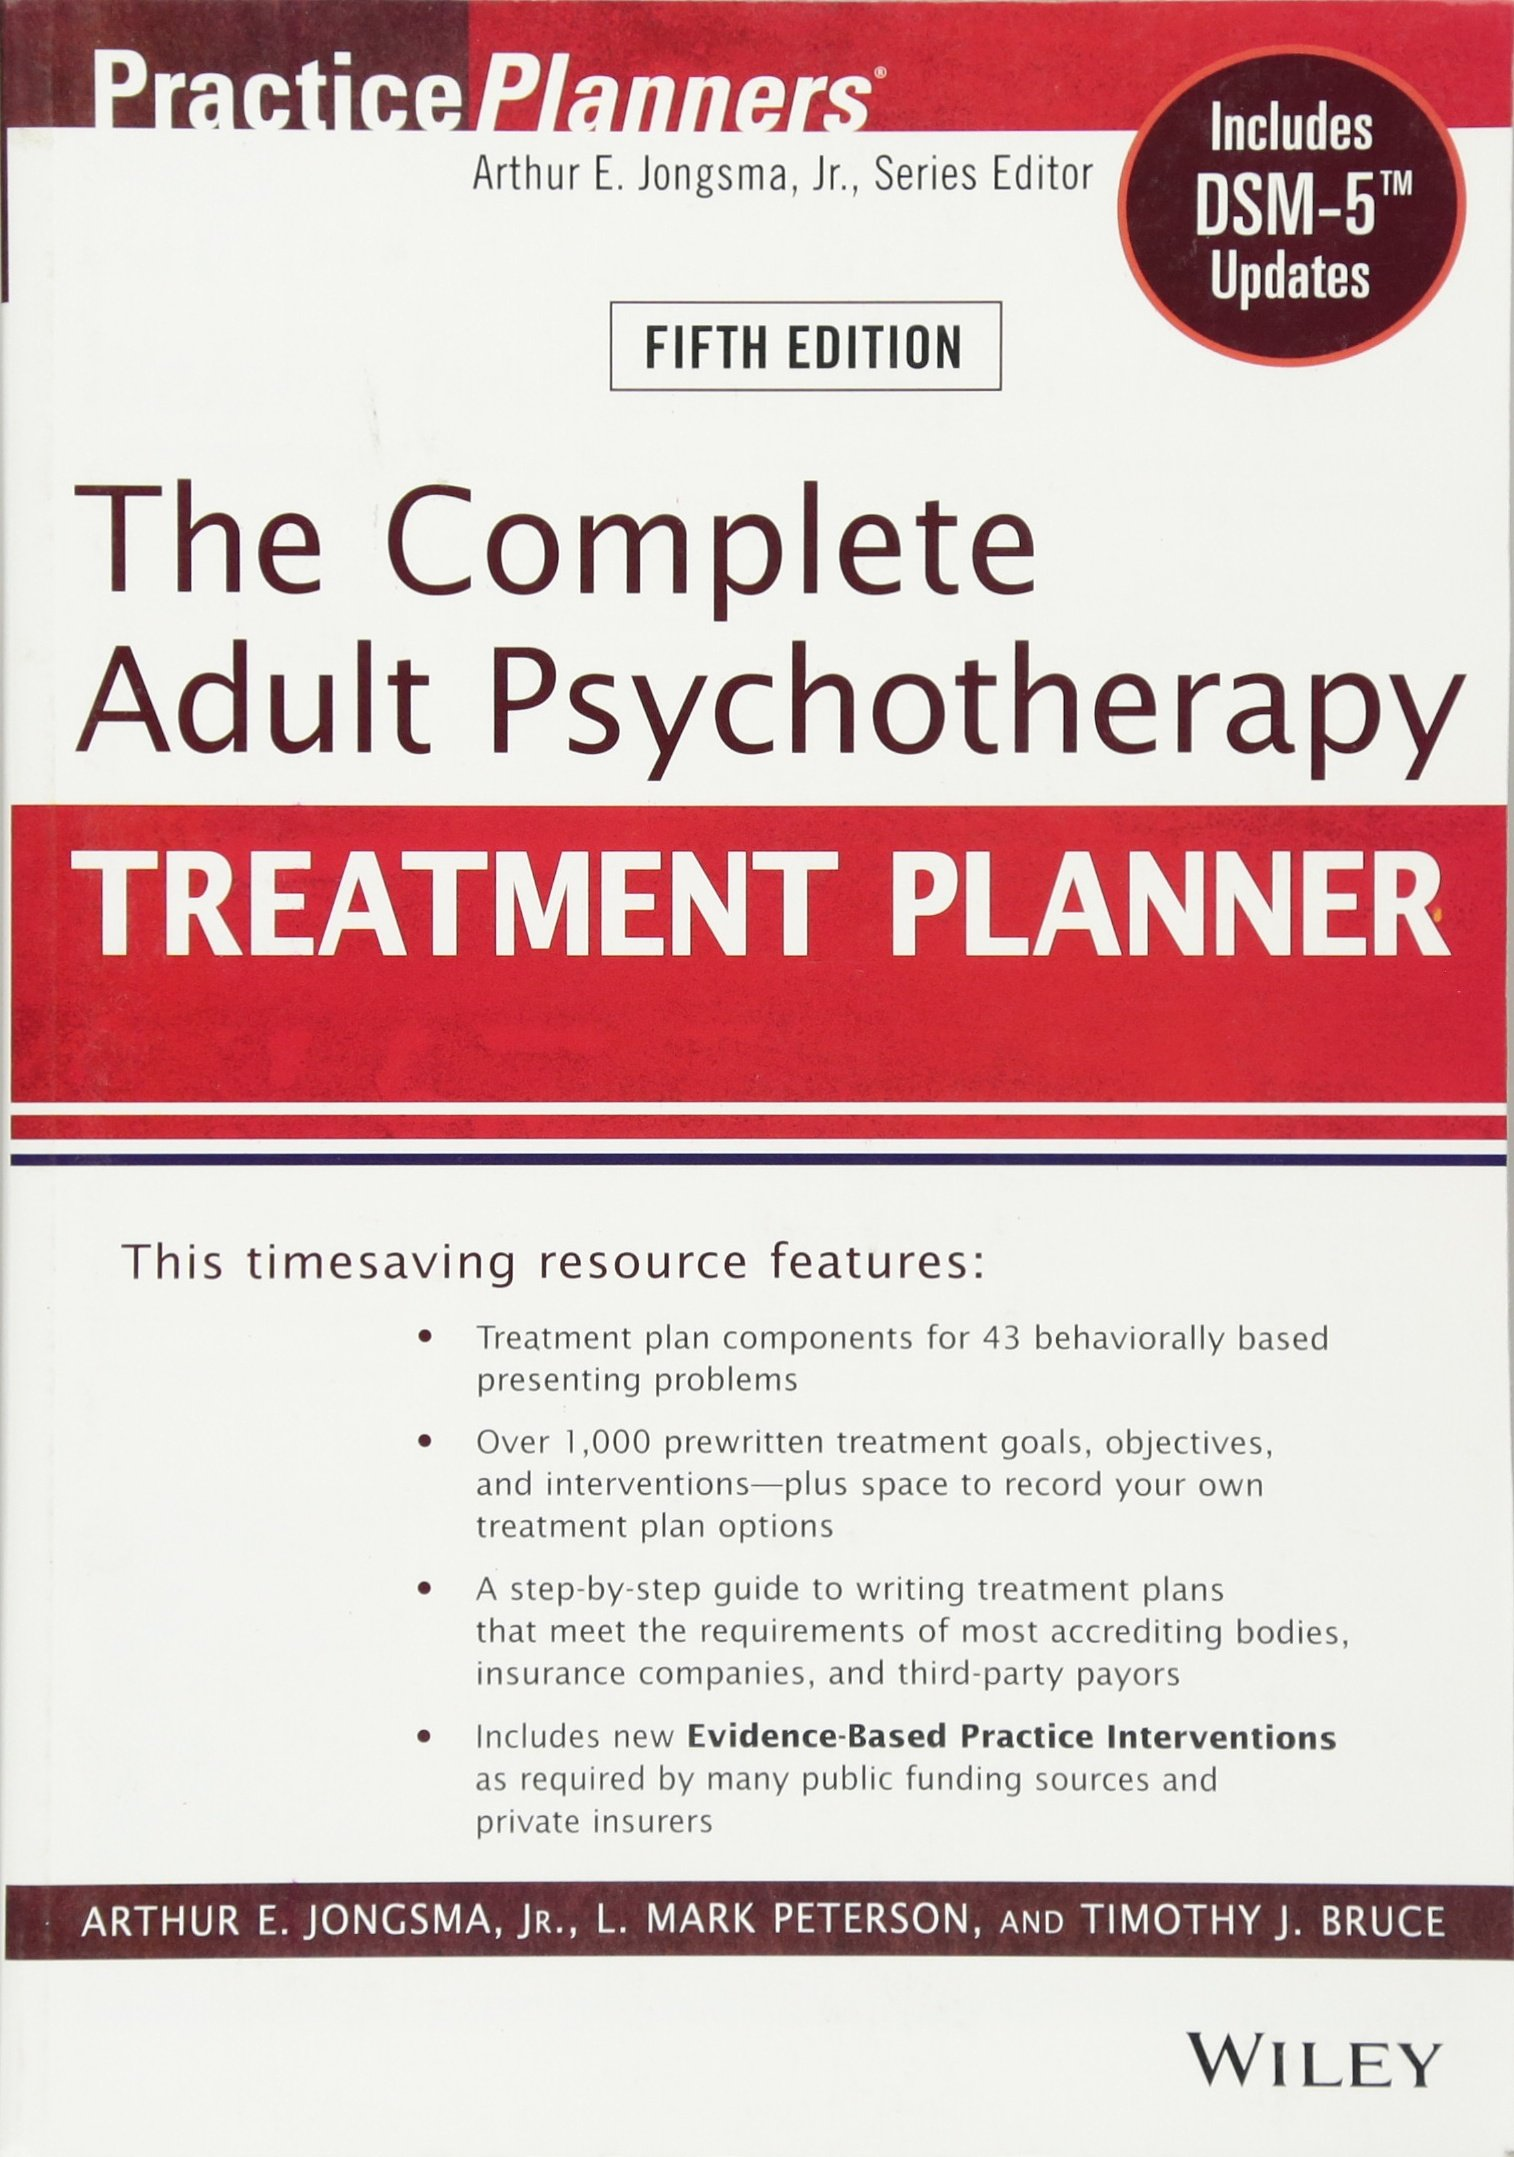 The Complete Adult Psychotherapy Treatment Planner: Includes DSM-5 Updates by Wiley